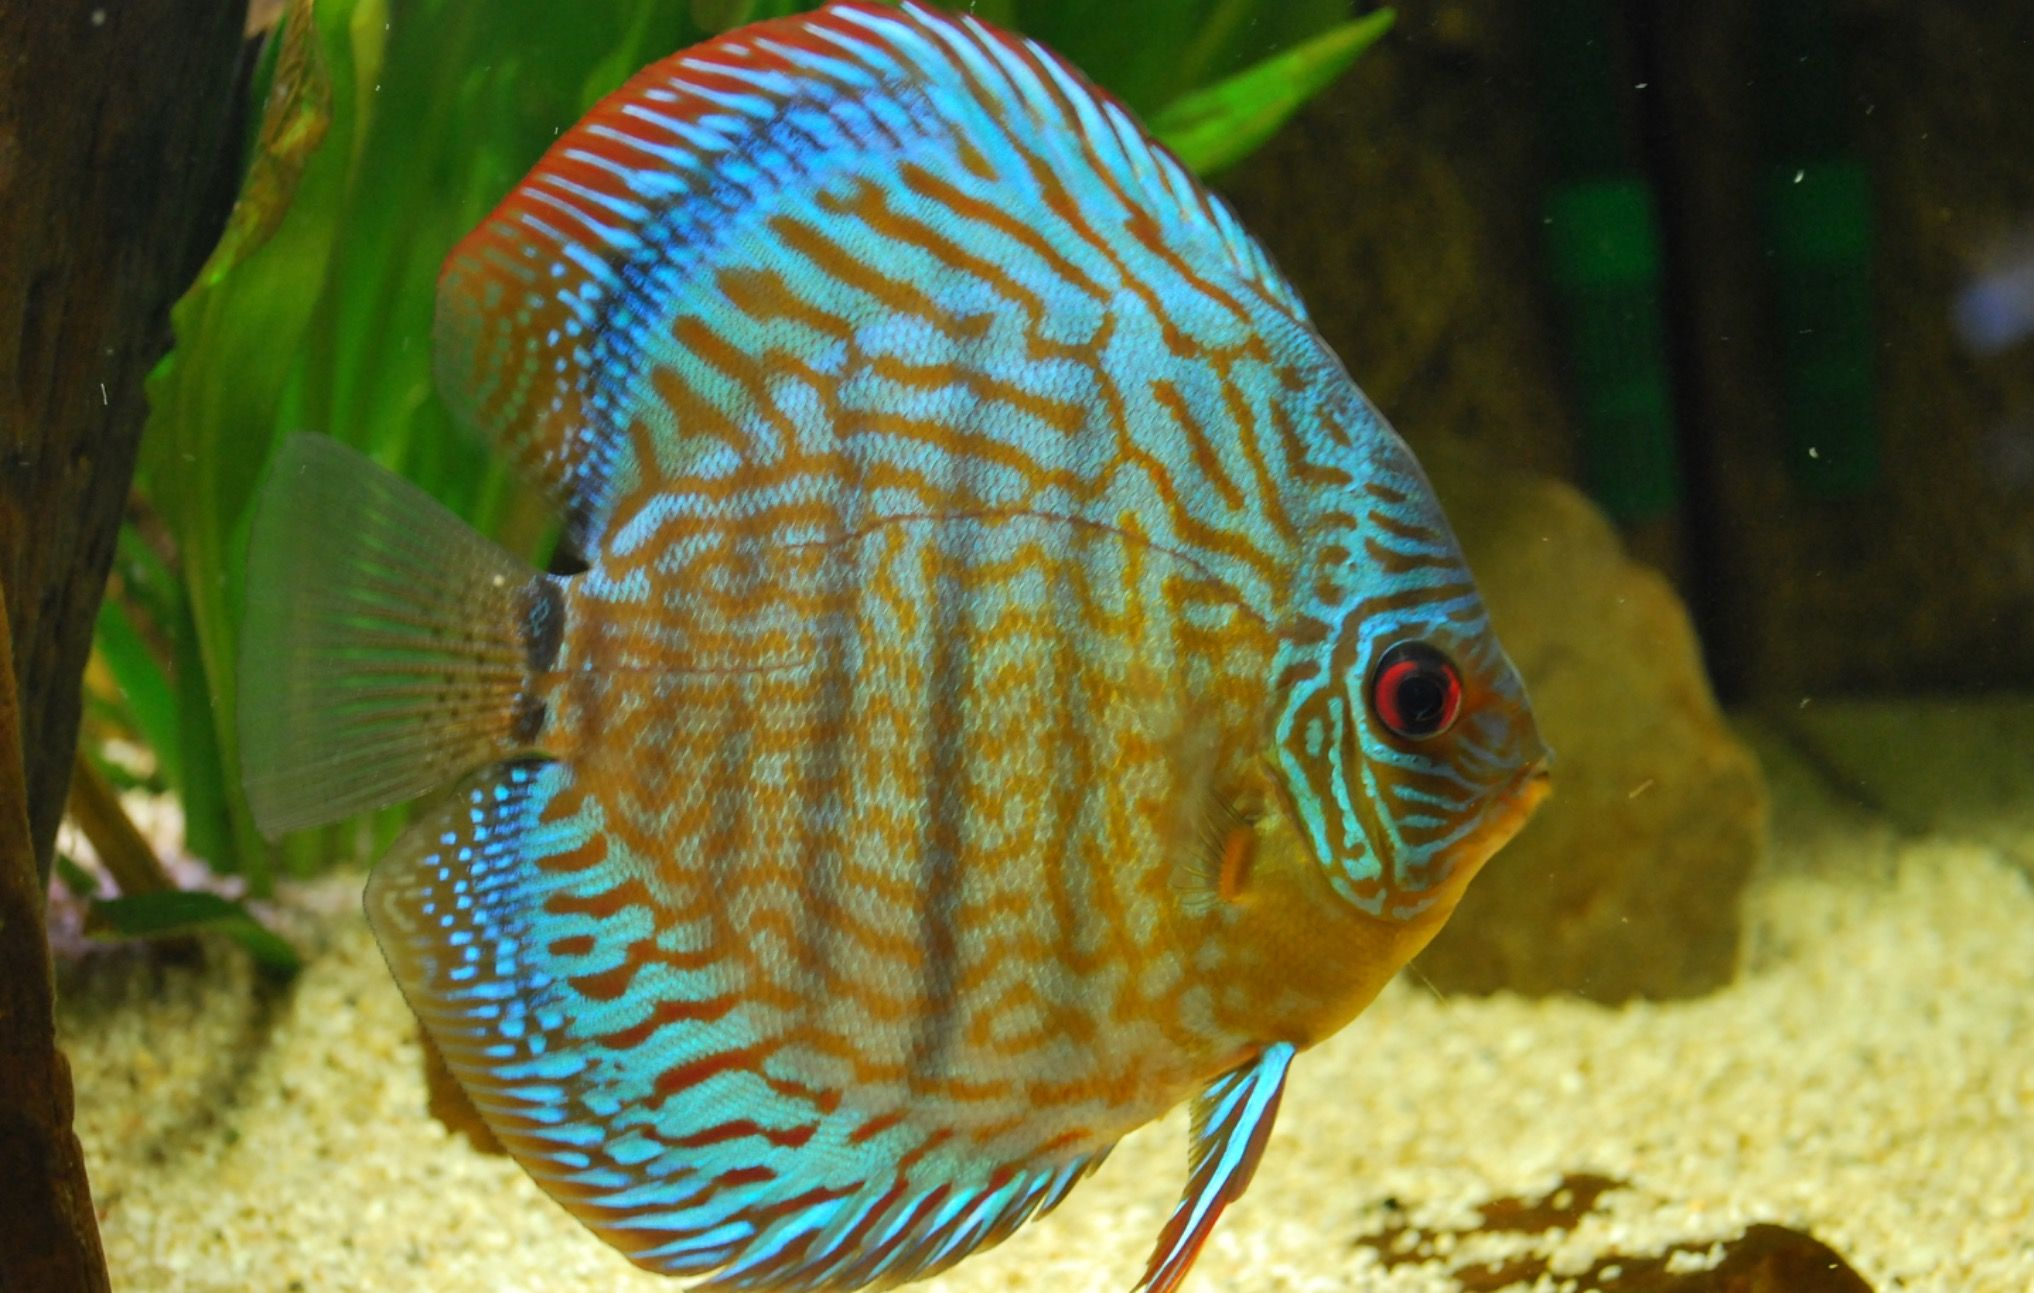 Discus Discus Fish Fish Care Discus Fish For Sale